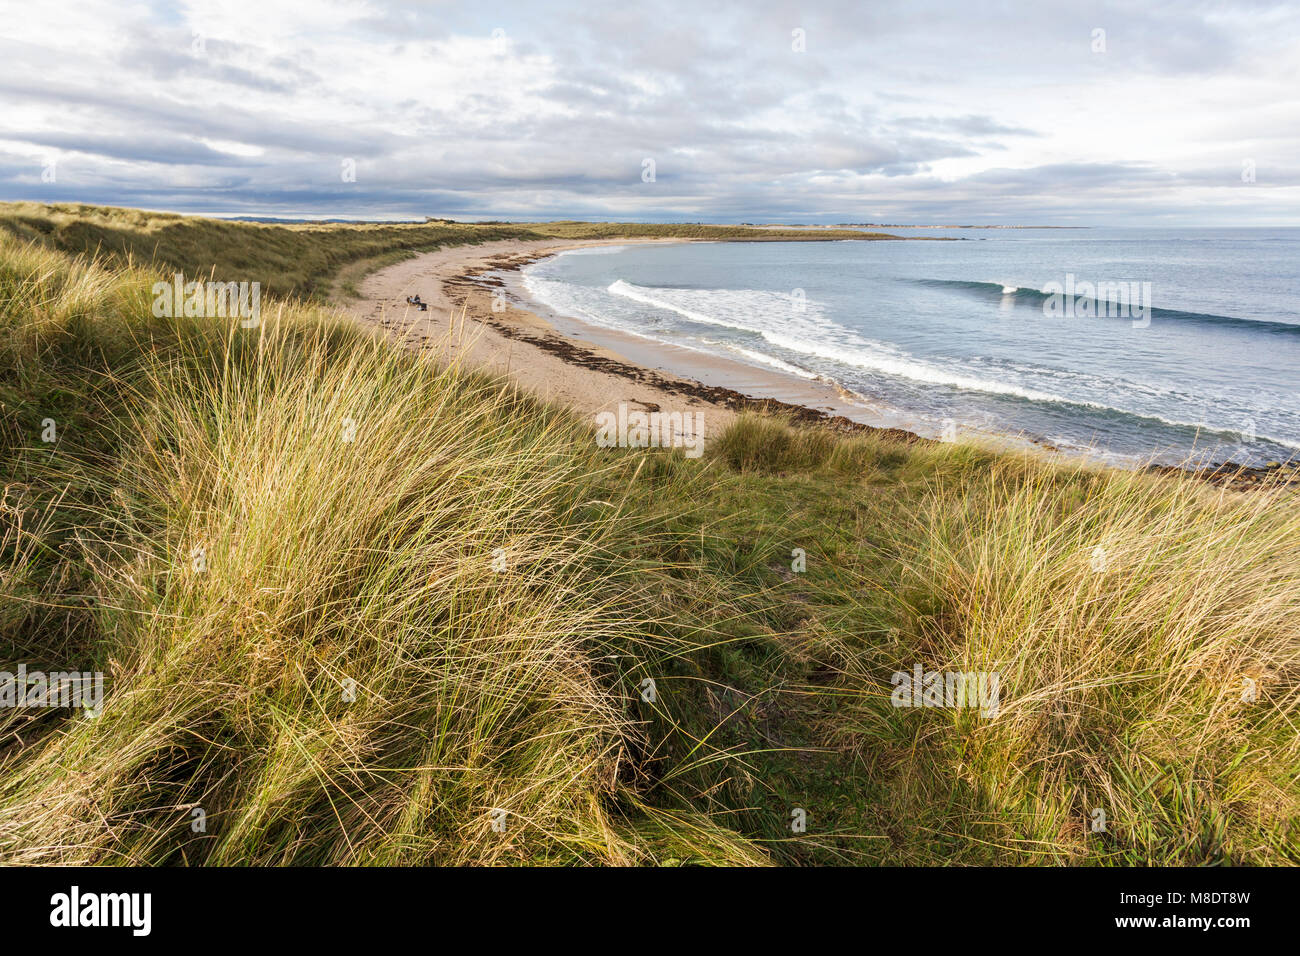 Football Hole next to Beadnell Bay in Northumberland - Stock Image